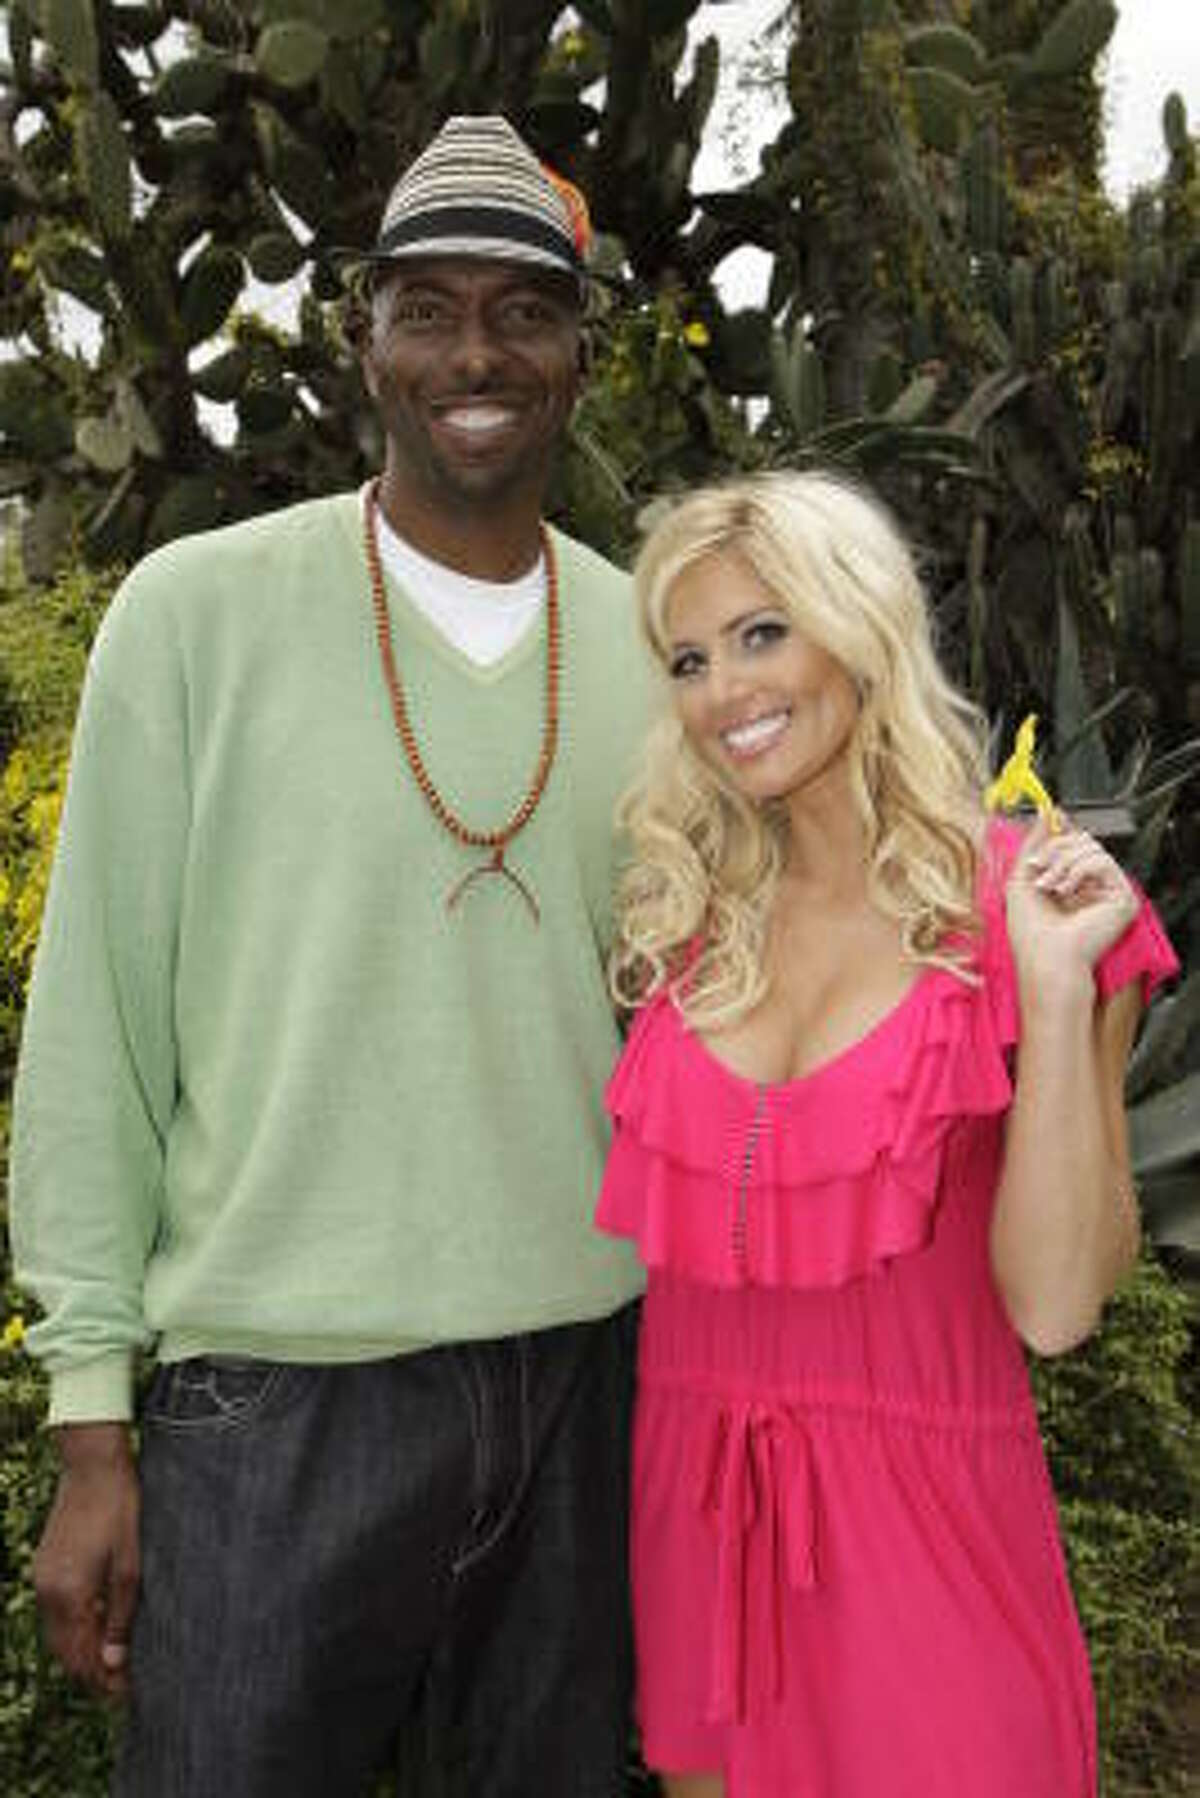 Torrie Wilson will join John Salley for the reality show I'm A Celebrity...Get Me Out of Here! on NBC.